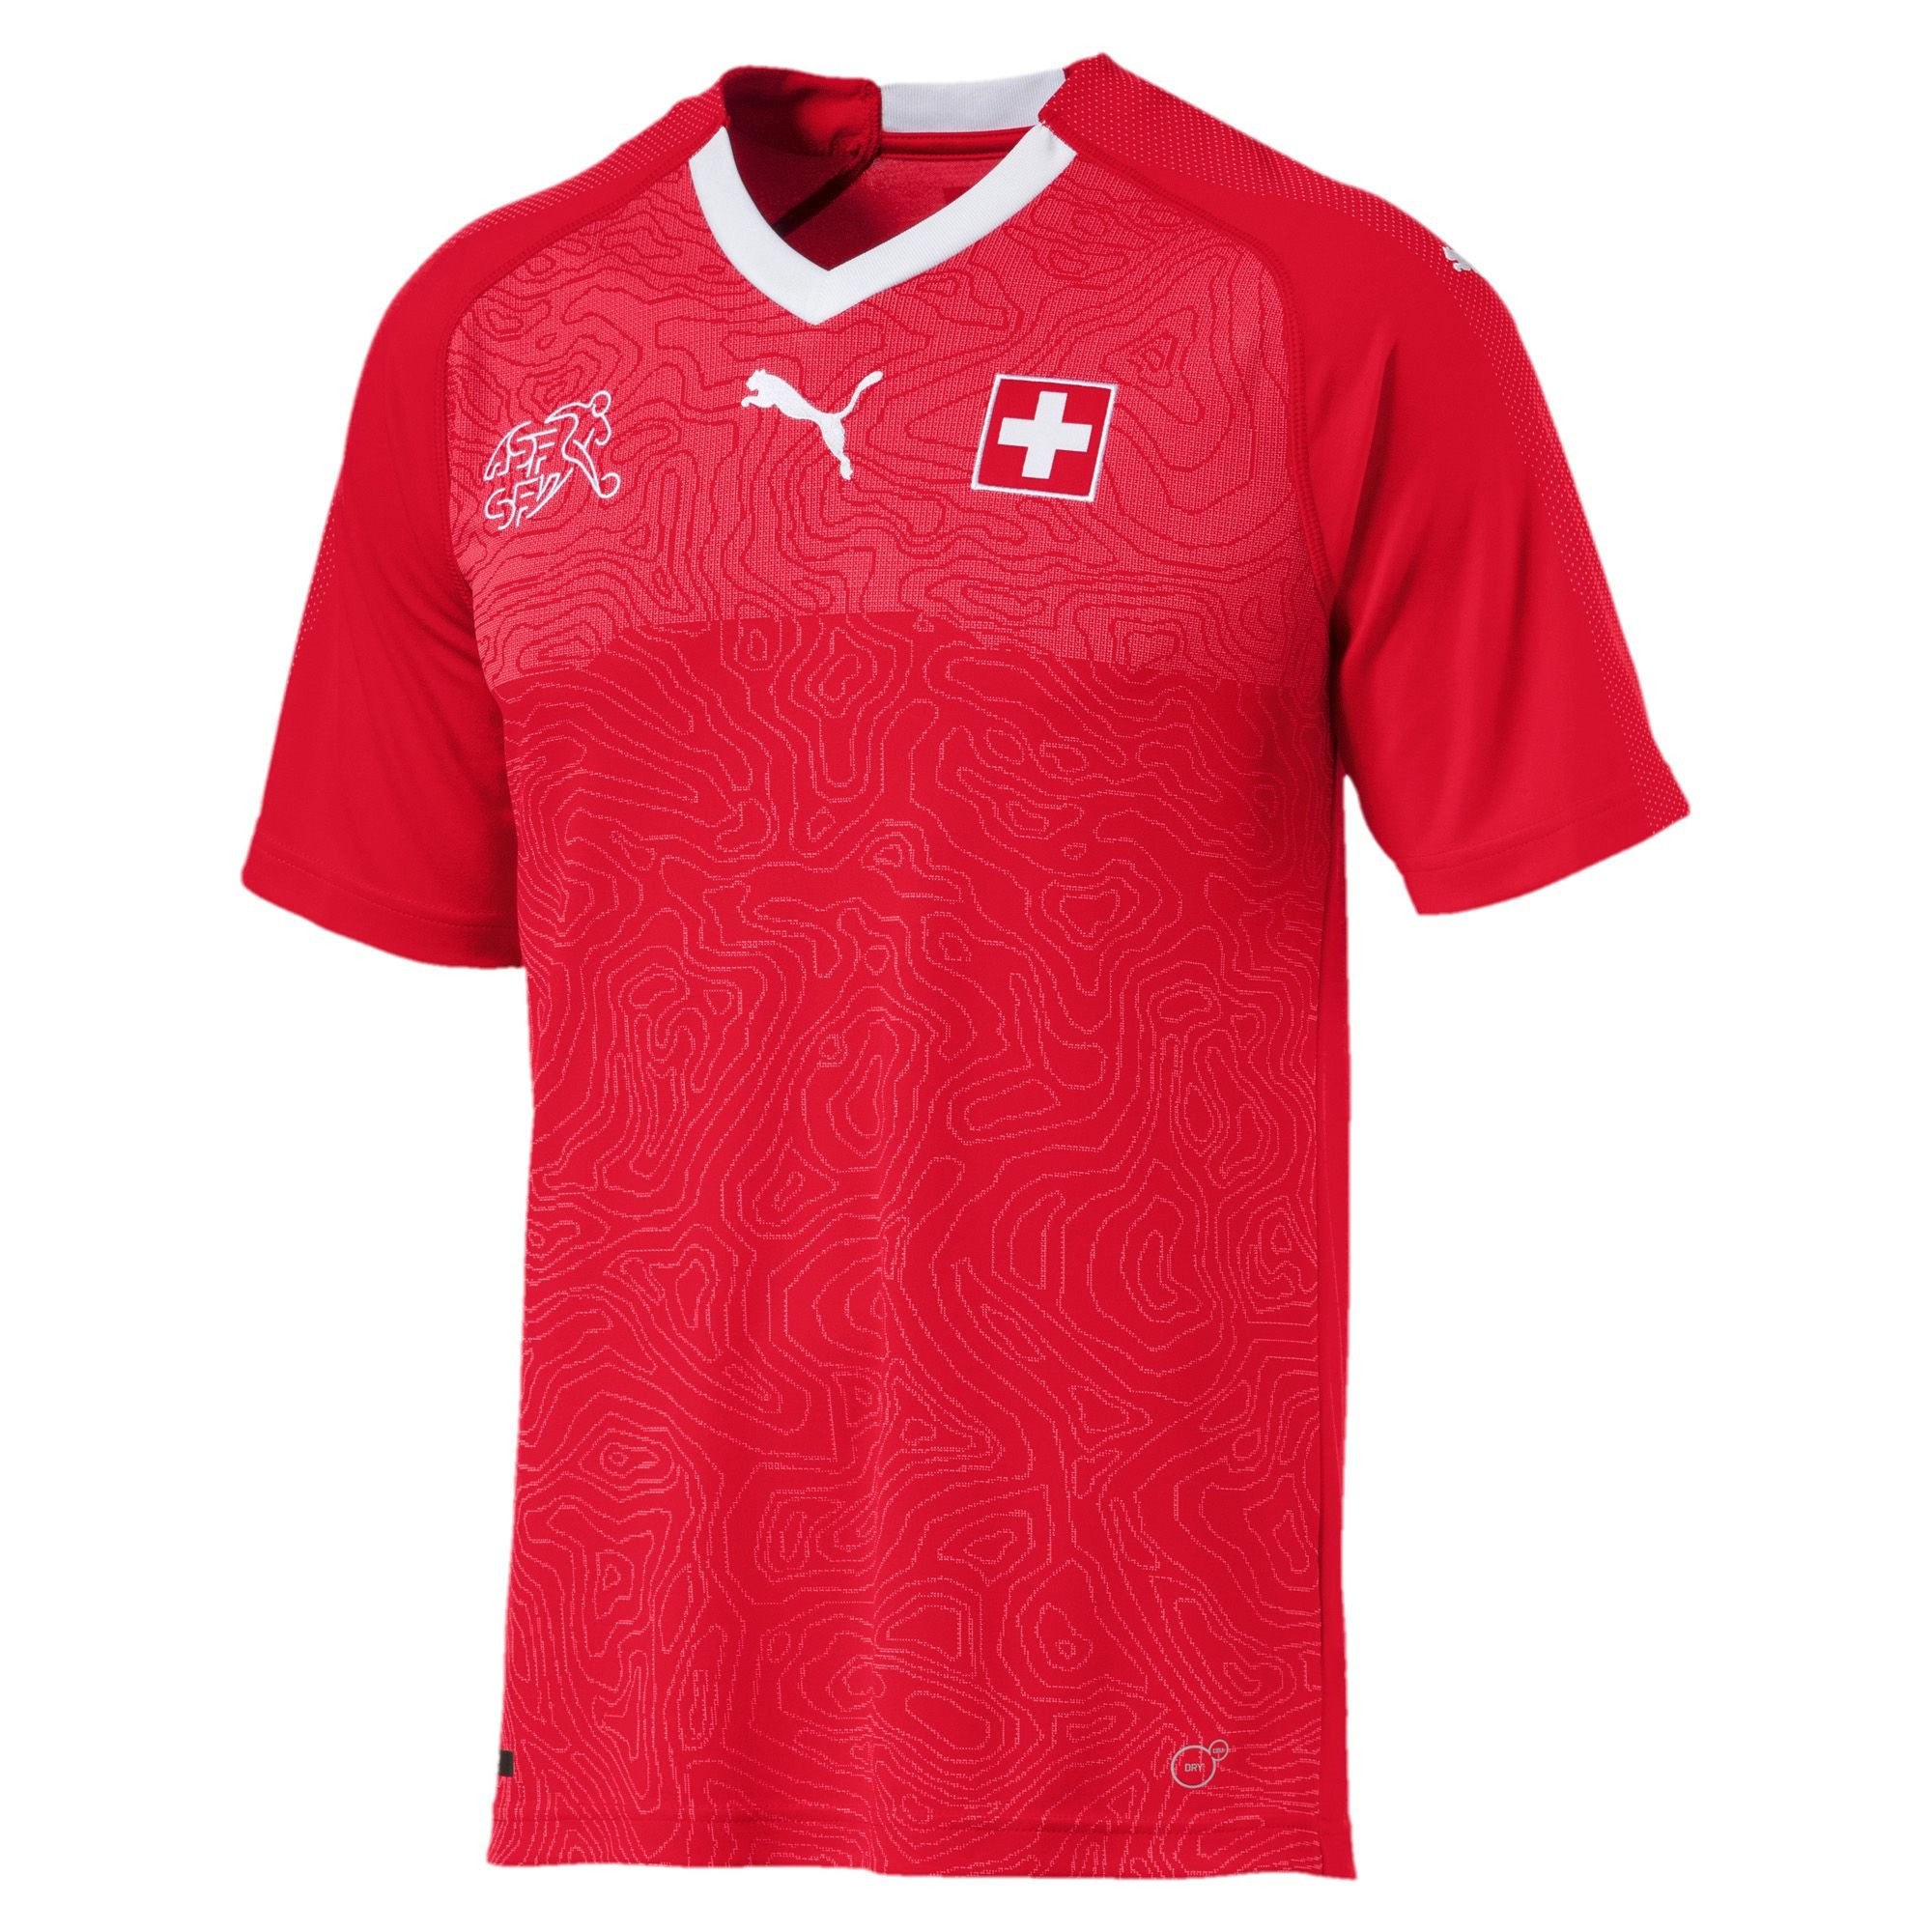 Switzerland football kit